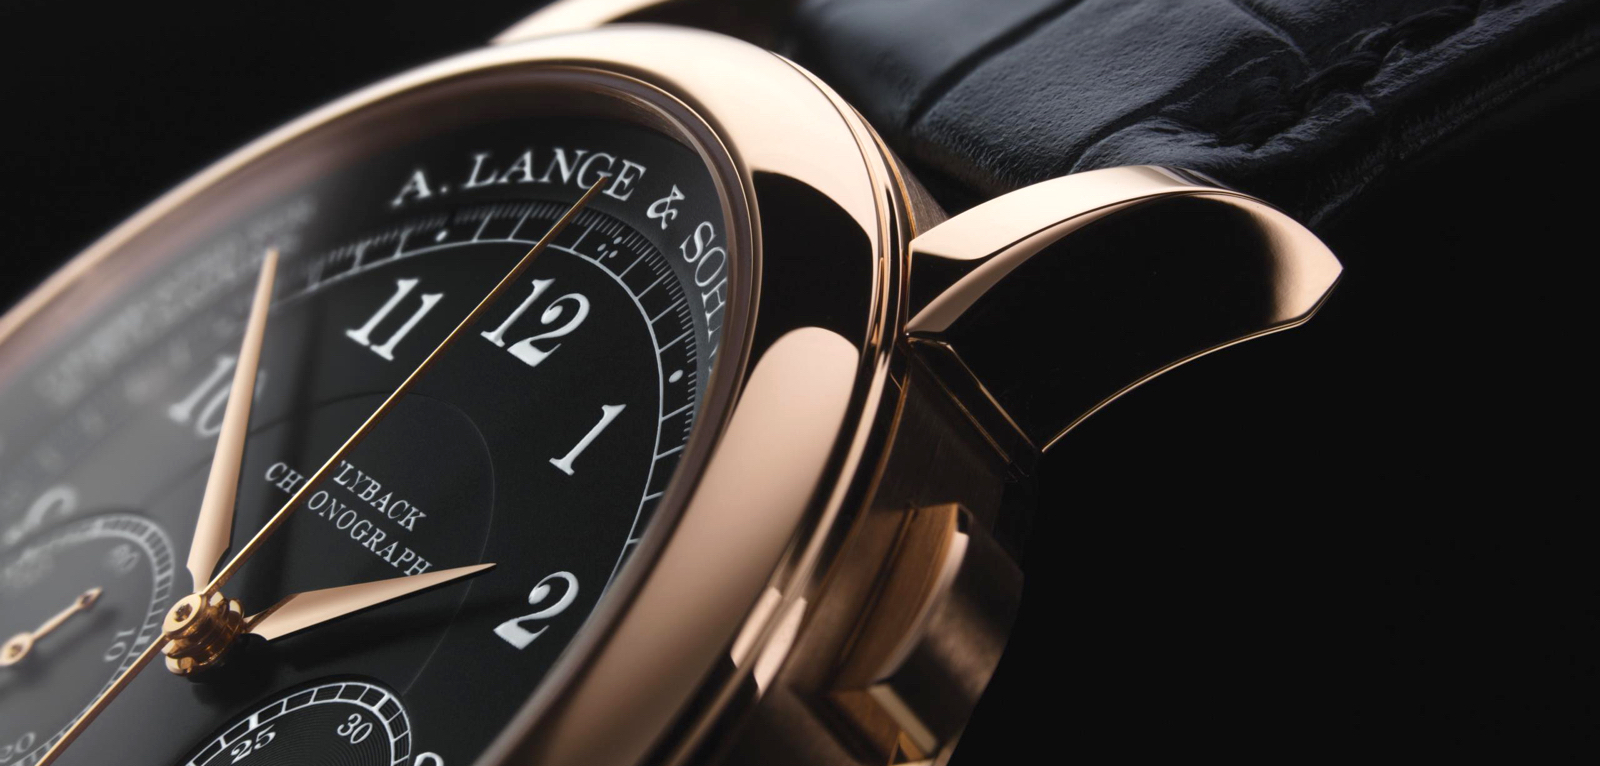 Lange 1815 Chronograph making of Cover